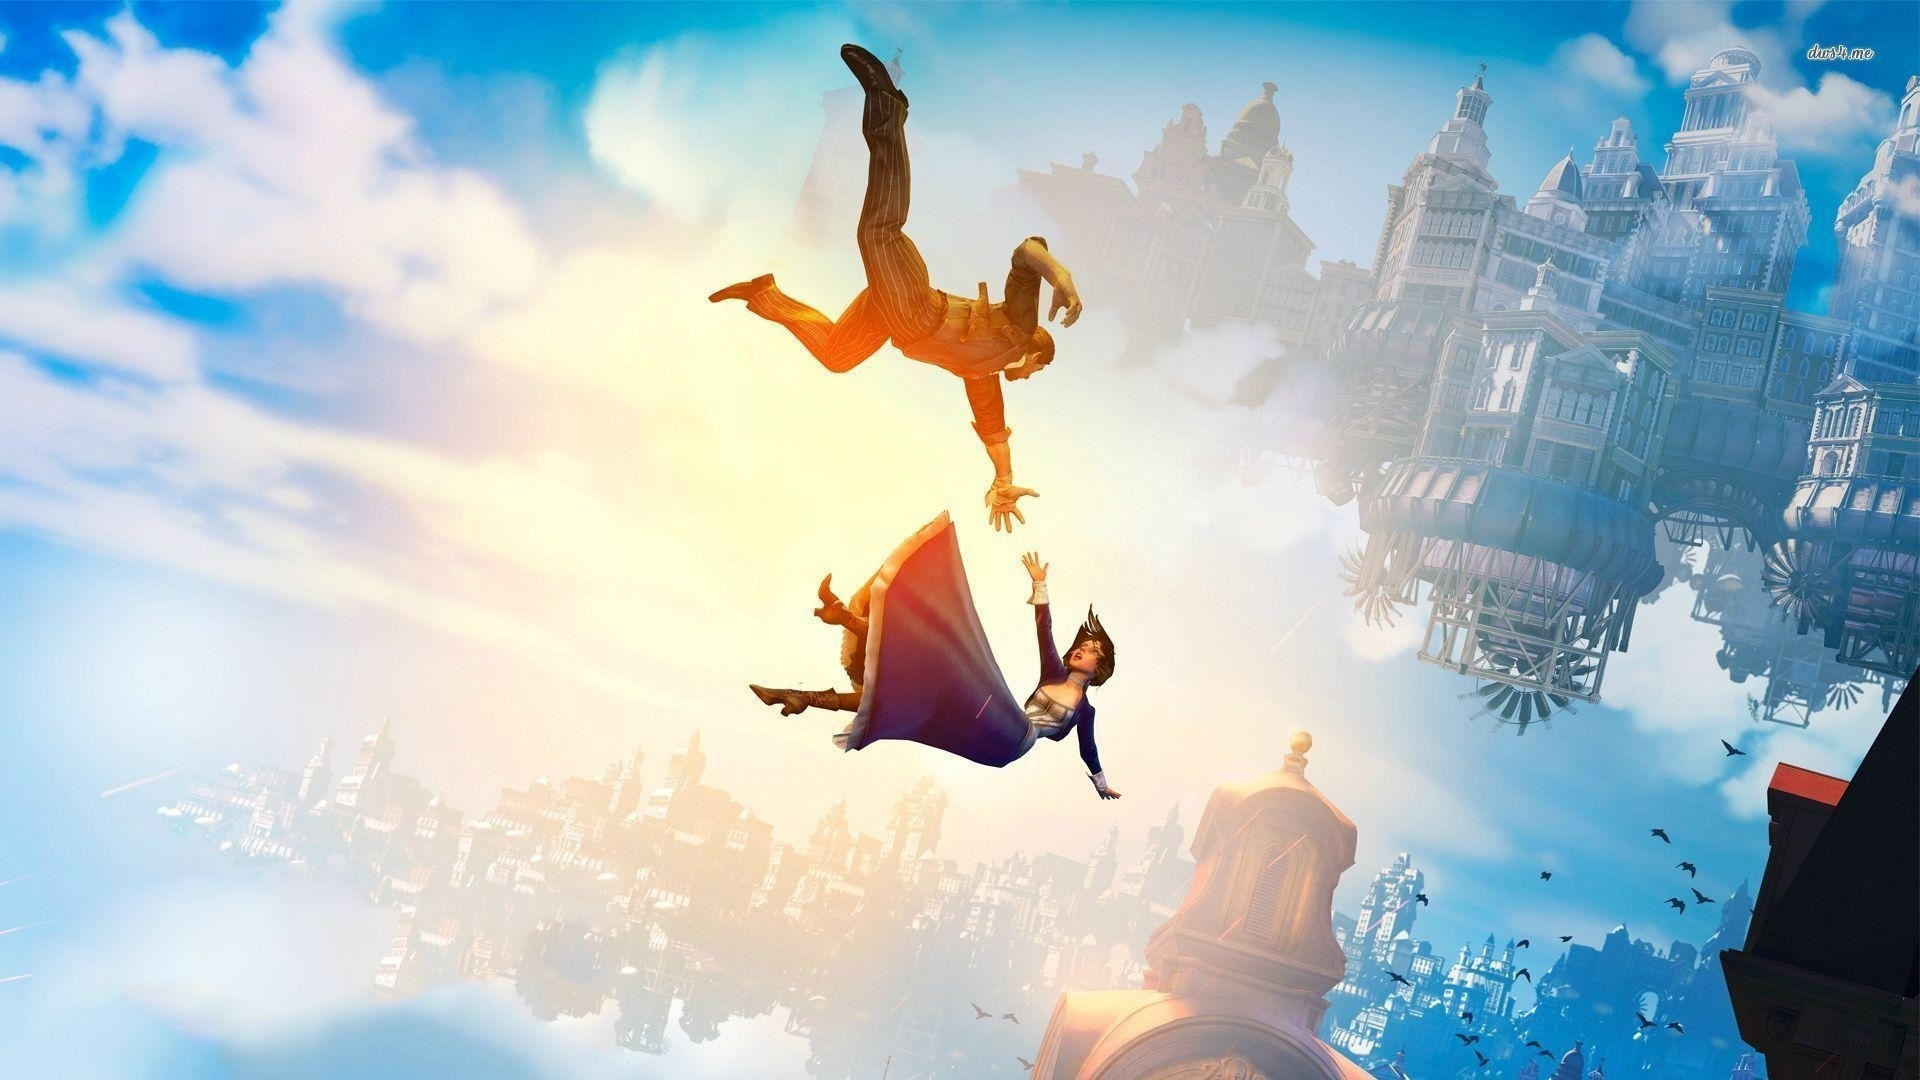 bioshock infinite wallpaper 1080p (77+ images)